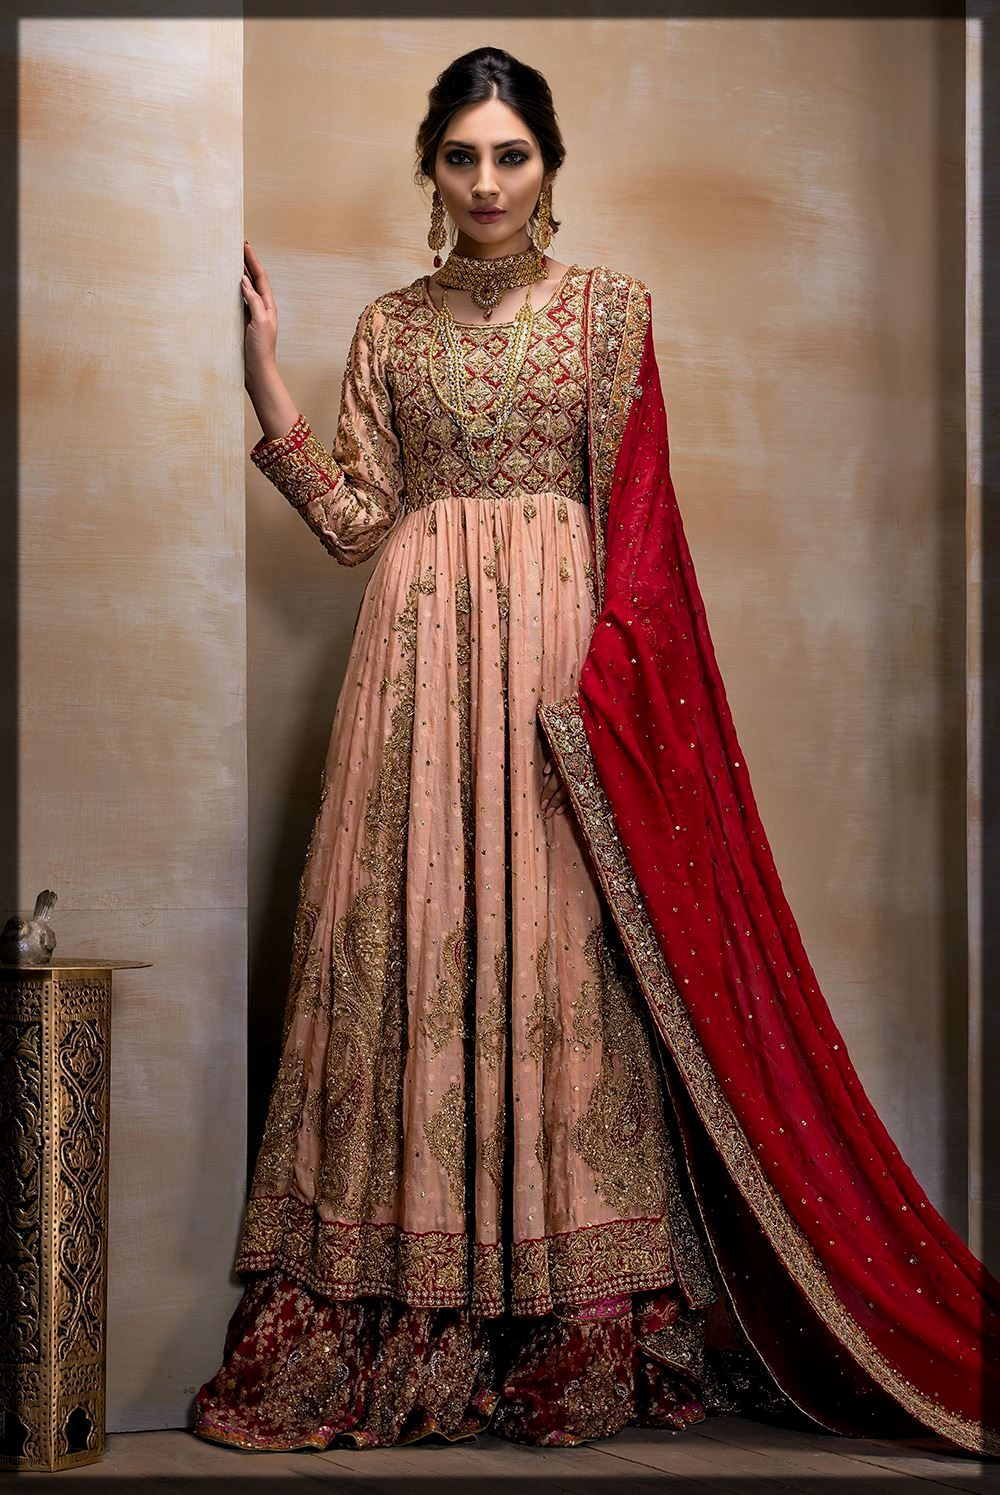 Soft Peach and Deep Red Bridal Barat Outfit